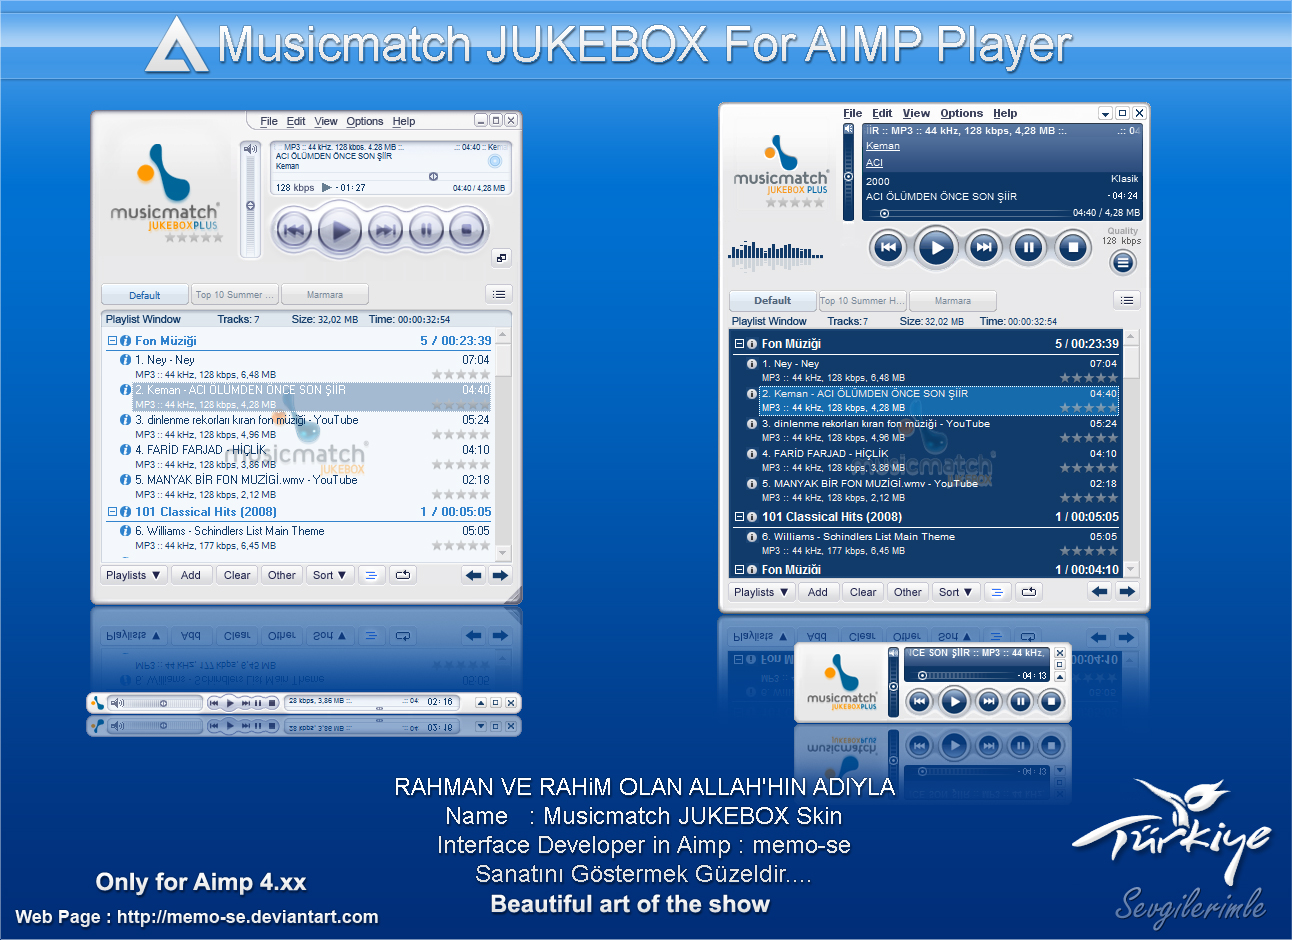 Musicmatch Jukebox Skin for AIMP Player